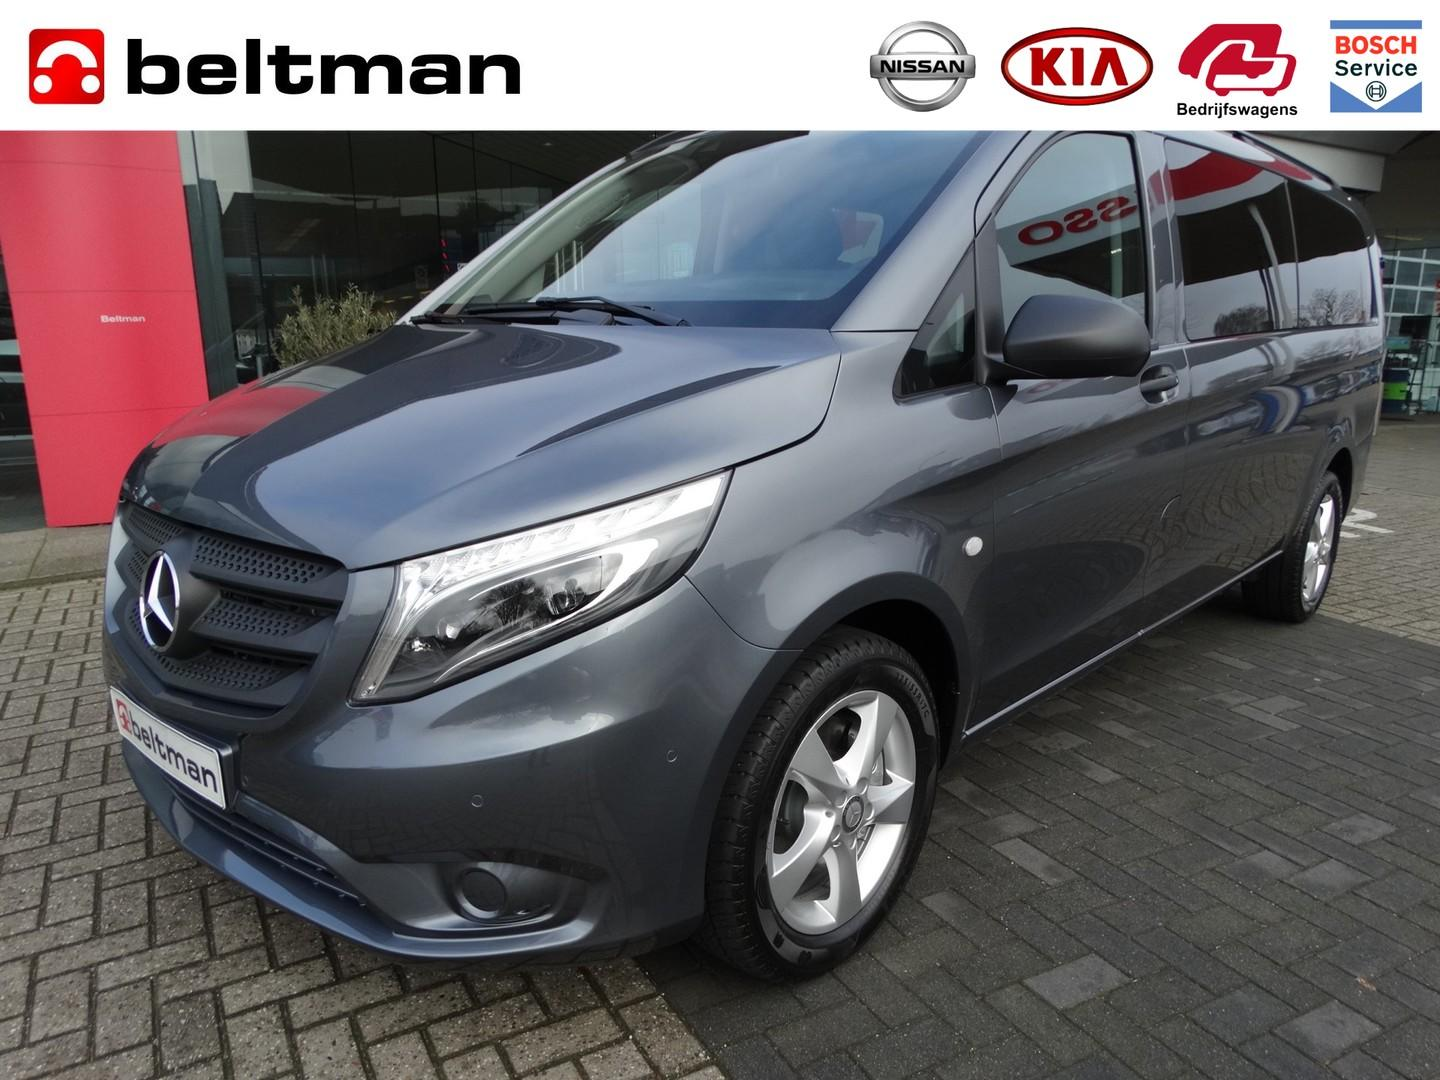 Mercedes-benz Vito 119 cdi automaat 190pk luxe dc